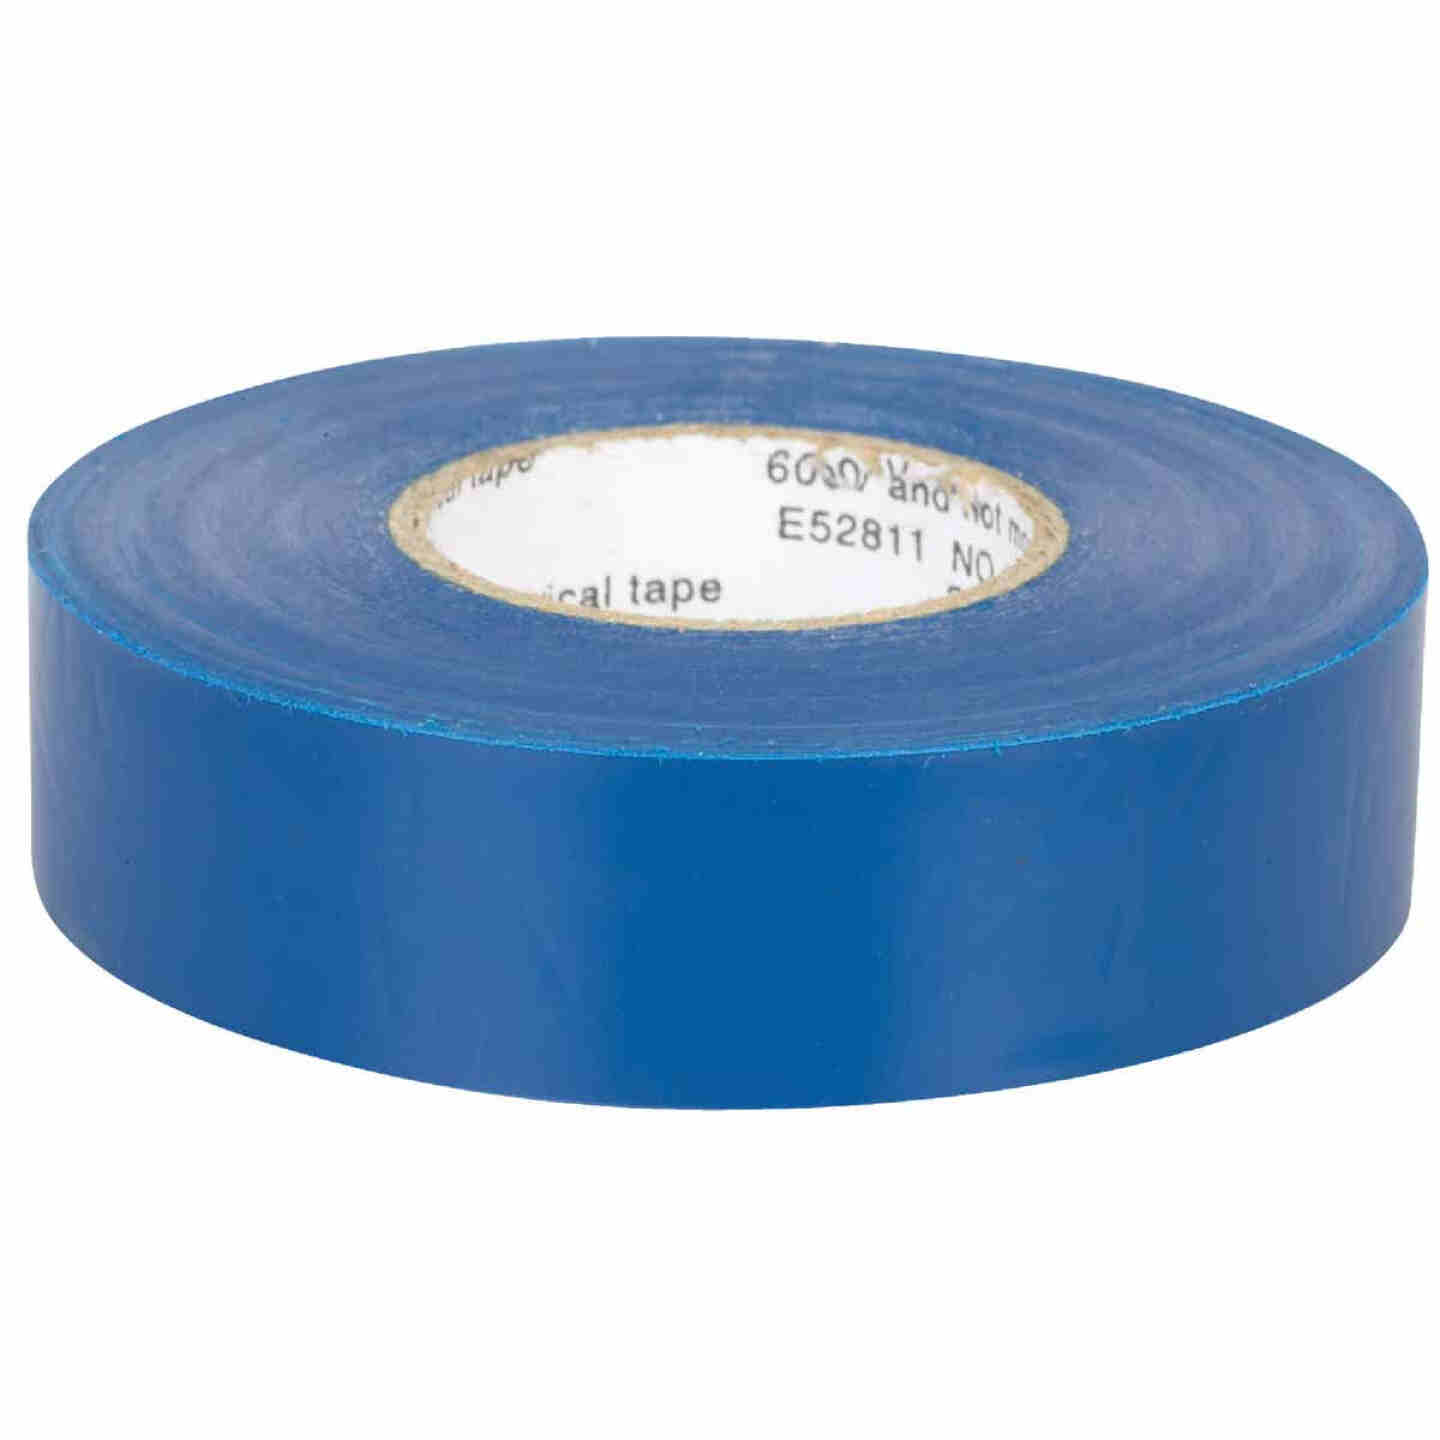 Do it General Purpose 3/4 In. x 60 Ft. BlueElectrical Tape Image 3